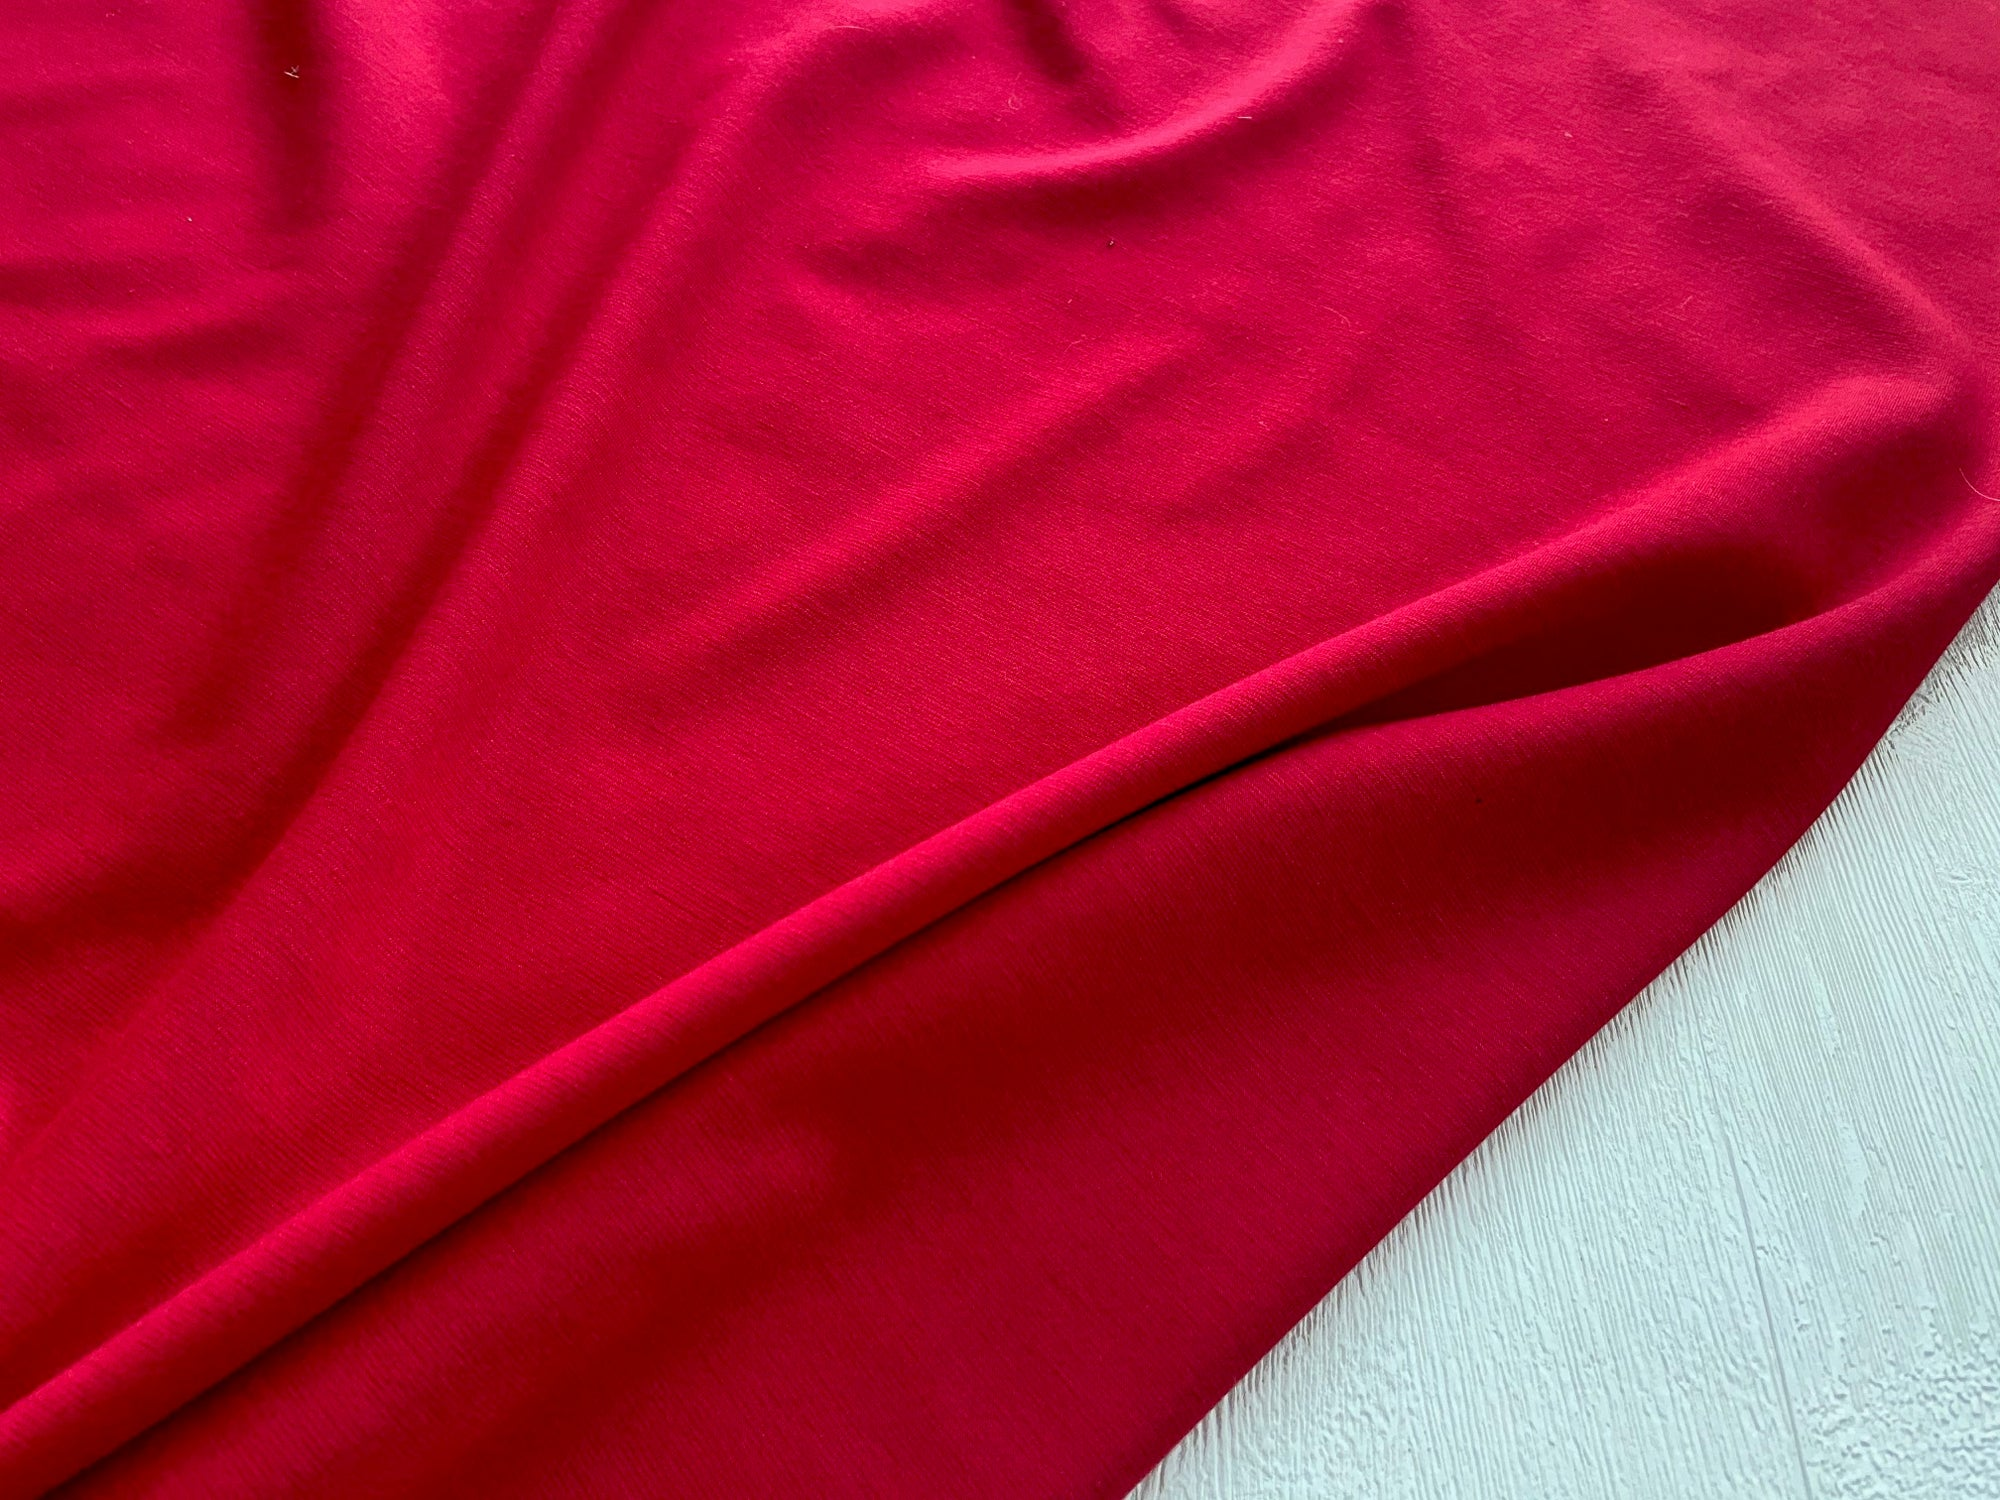 Red Ponteroma jersey €12 per mtr